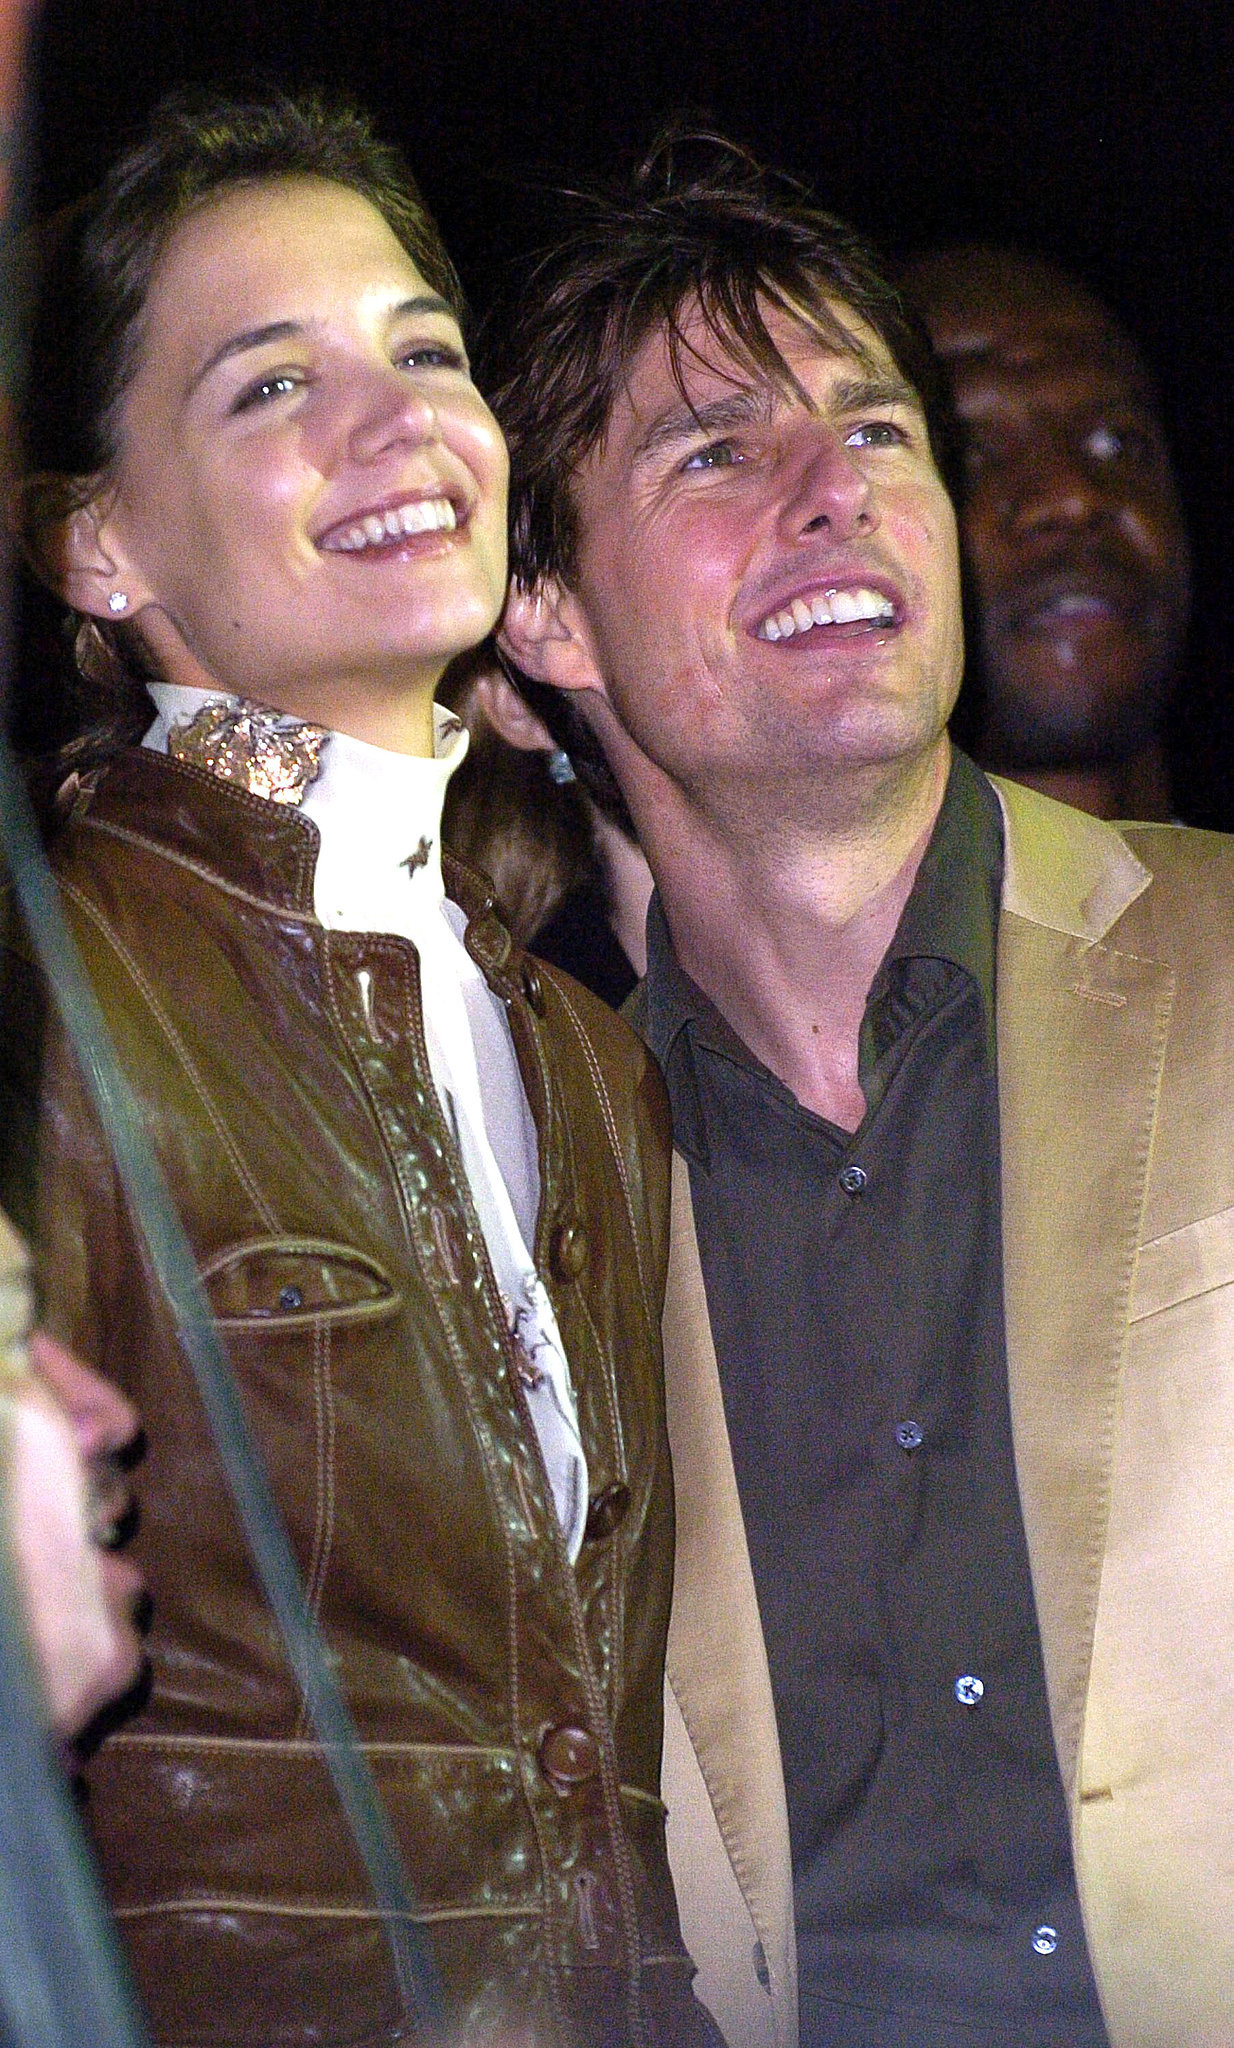 Then-couple Katie Holmes and Tom Cruise were a